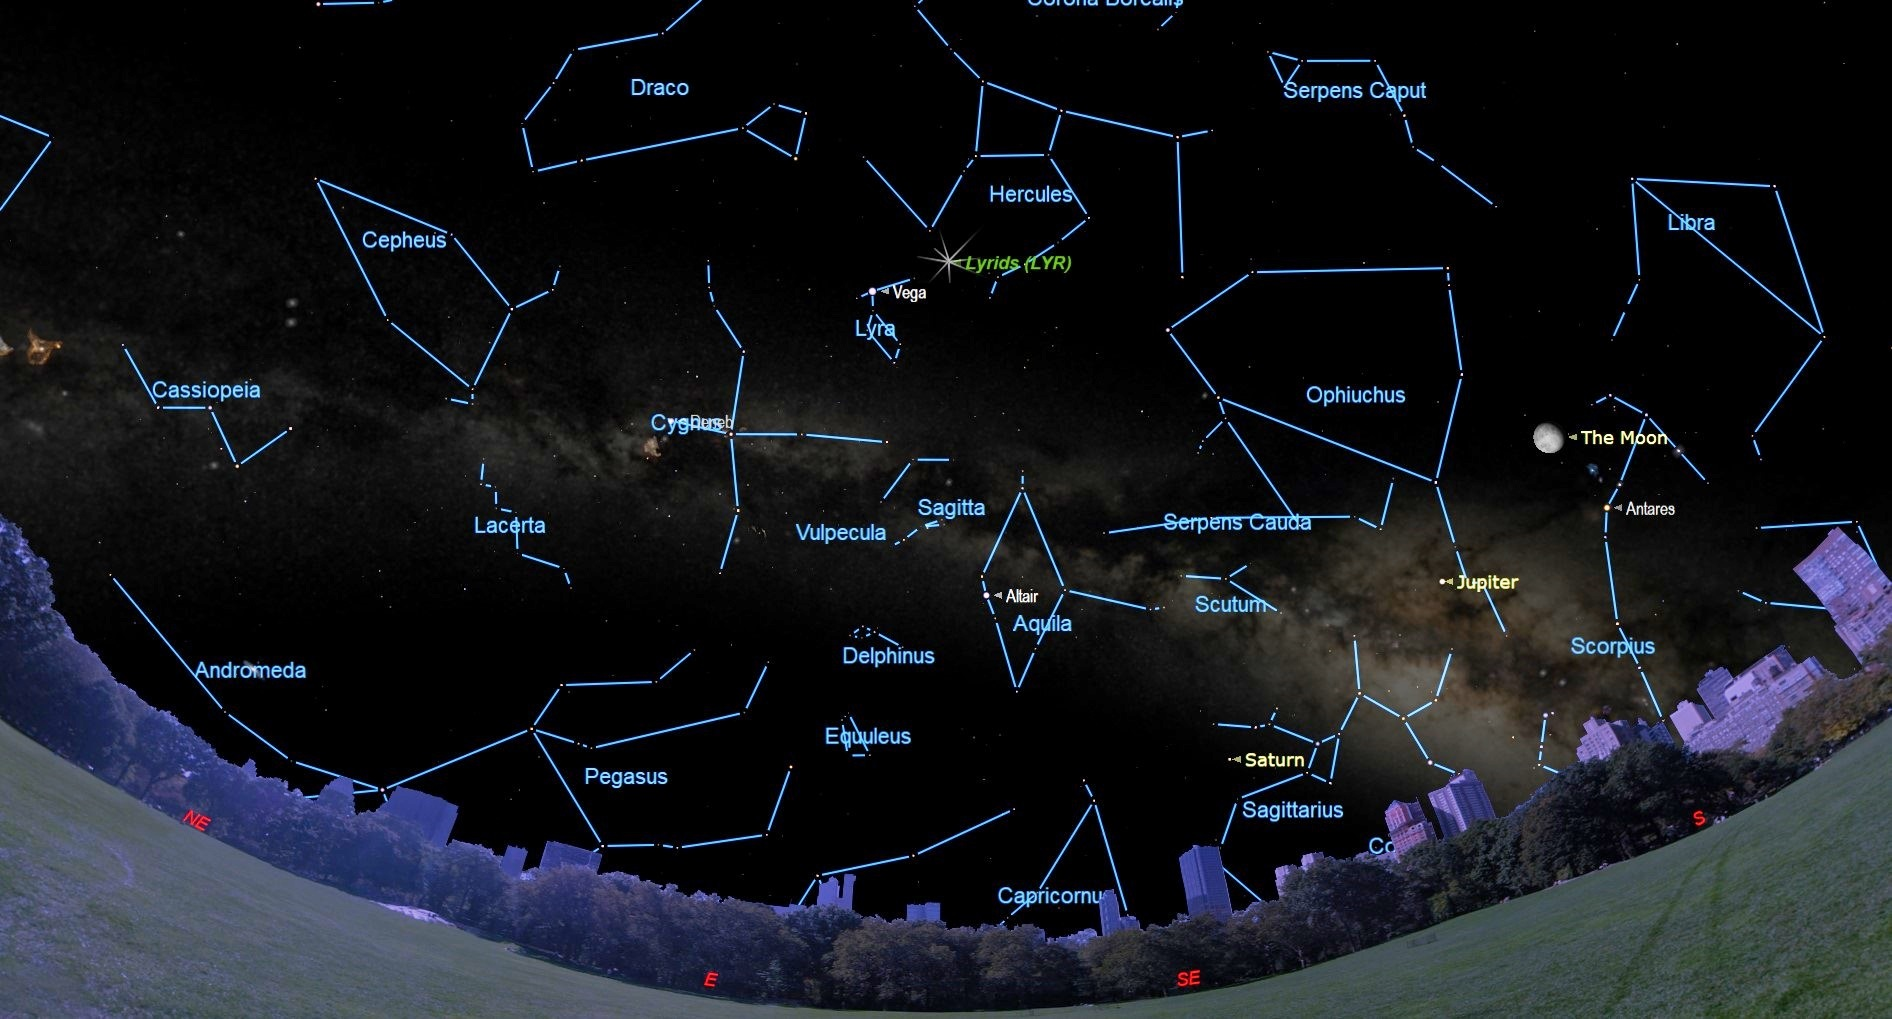 April's Lyrid Meteors Peak Early this Week, But the Moon May Interfere